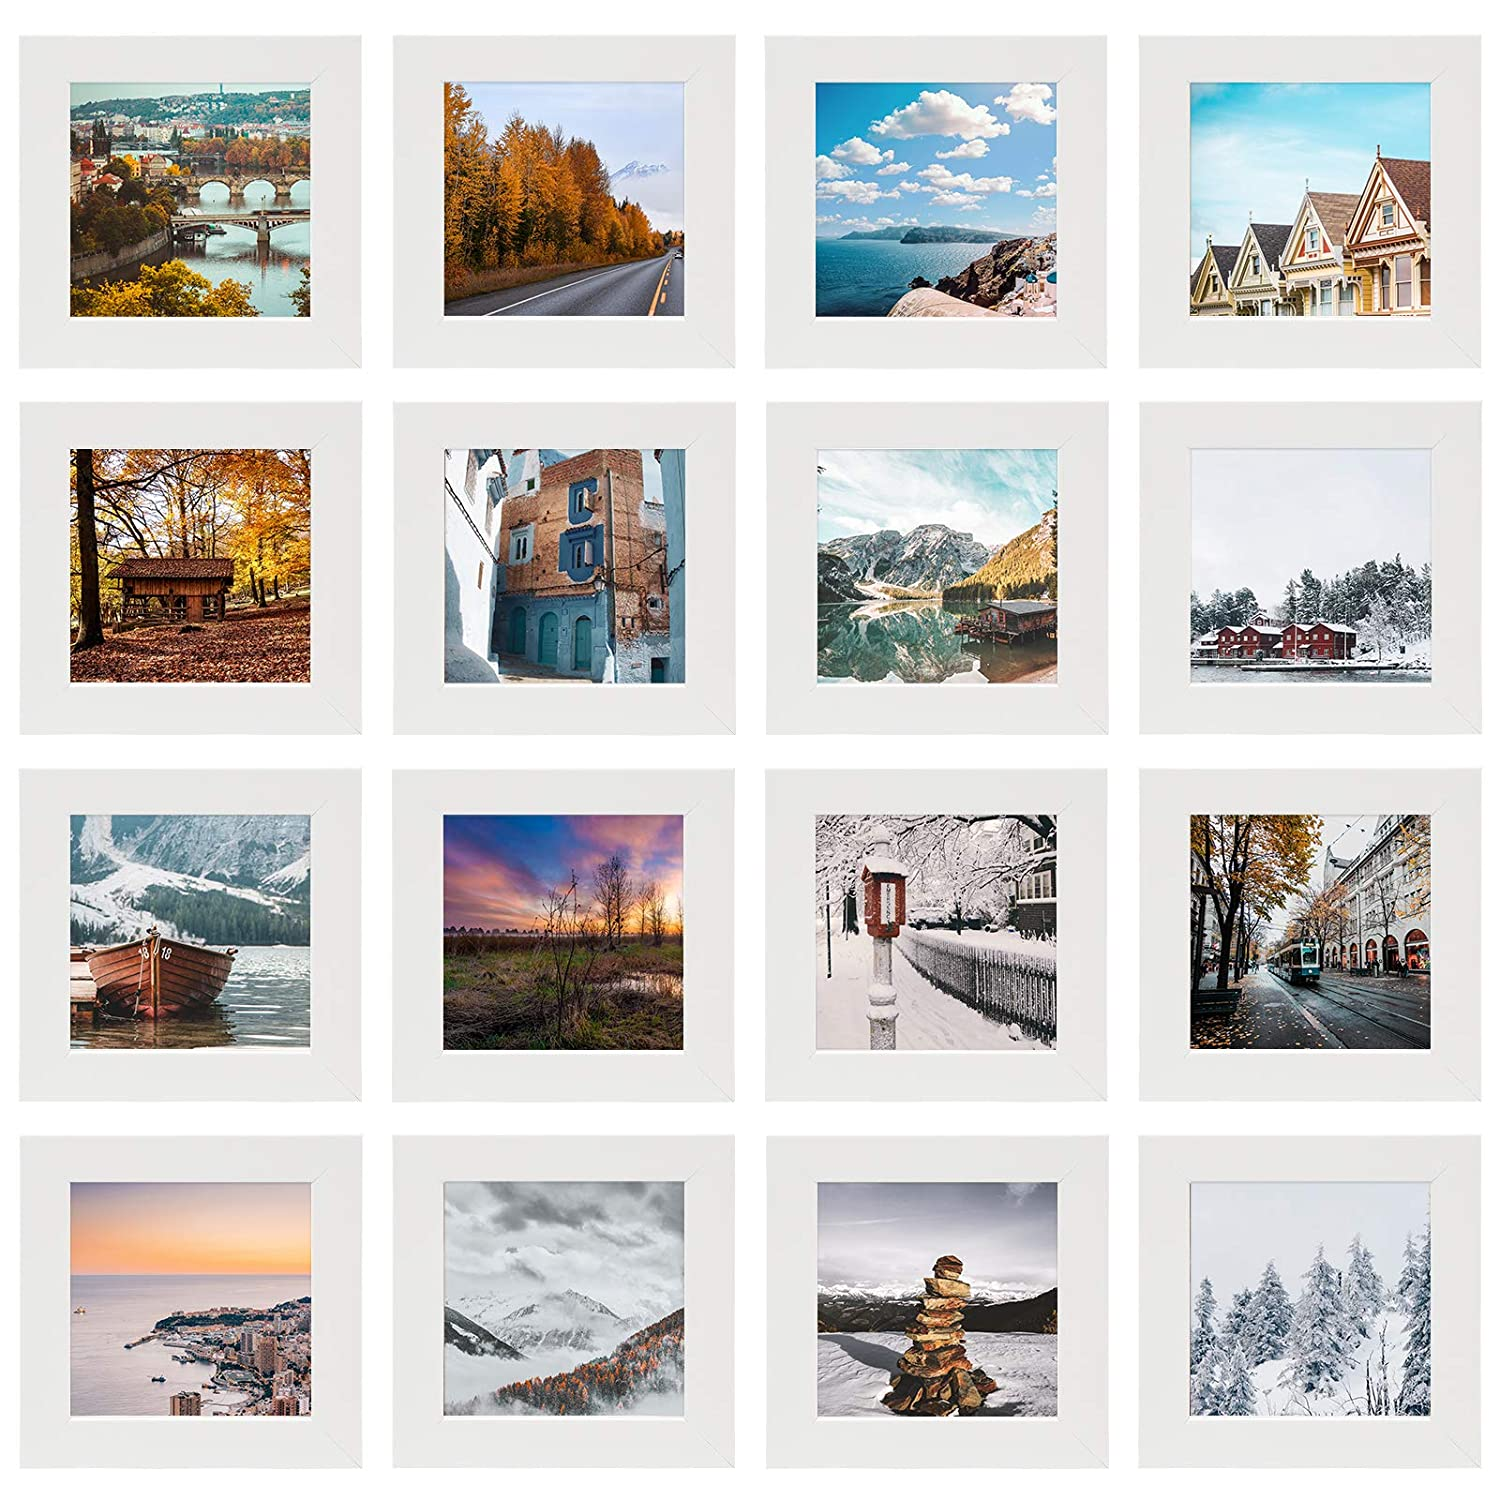 White Golden State Art 4x4-inch Square Photo Wood Frames Smartphone Instagram Frame Collection Set of 16